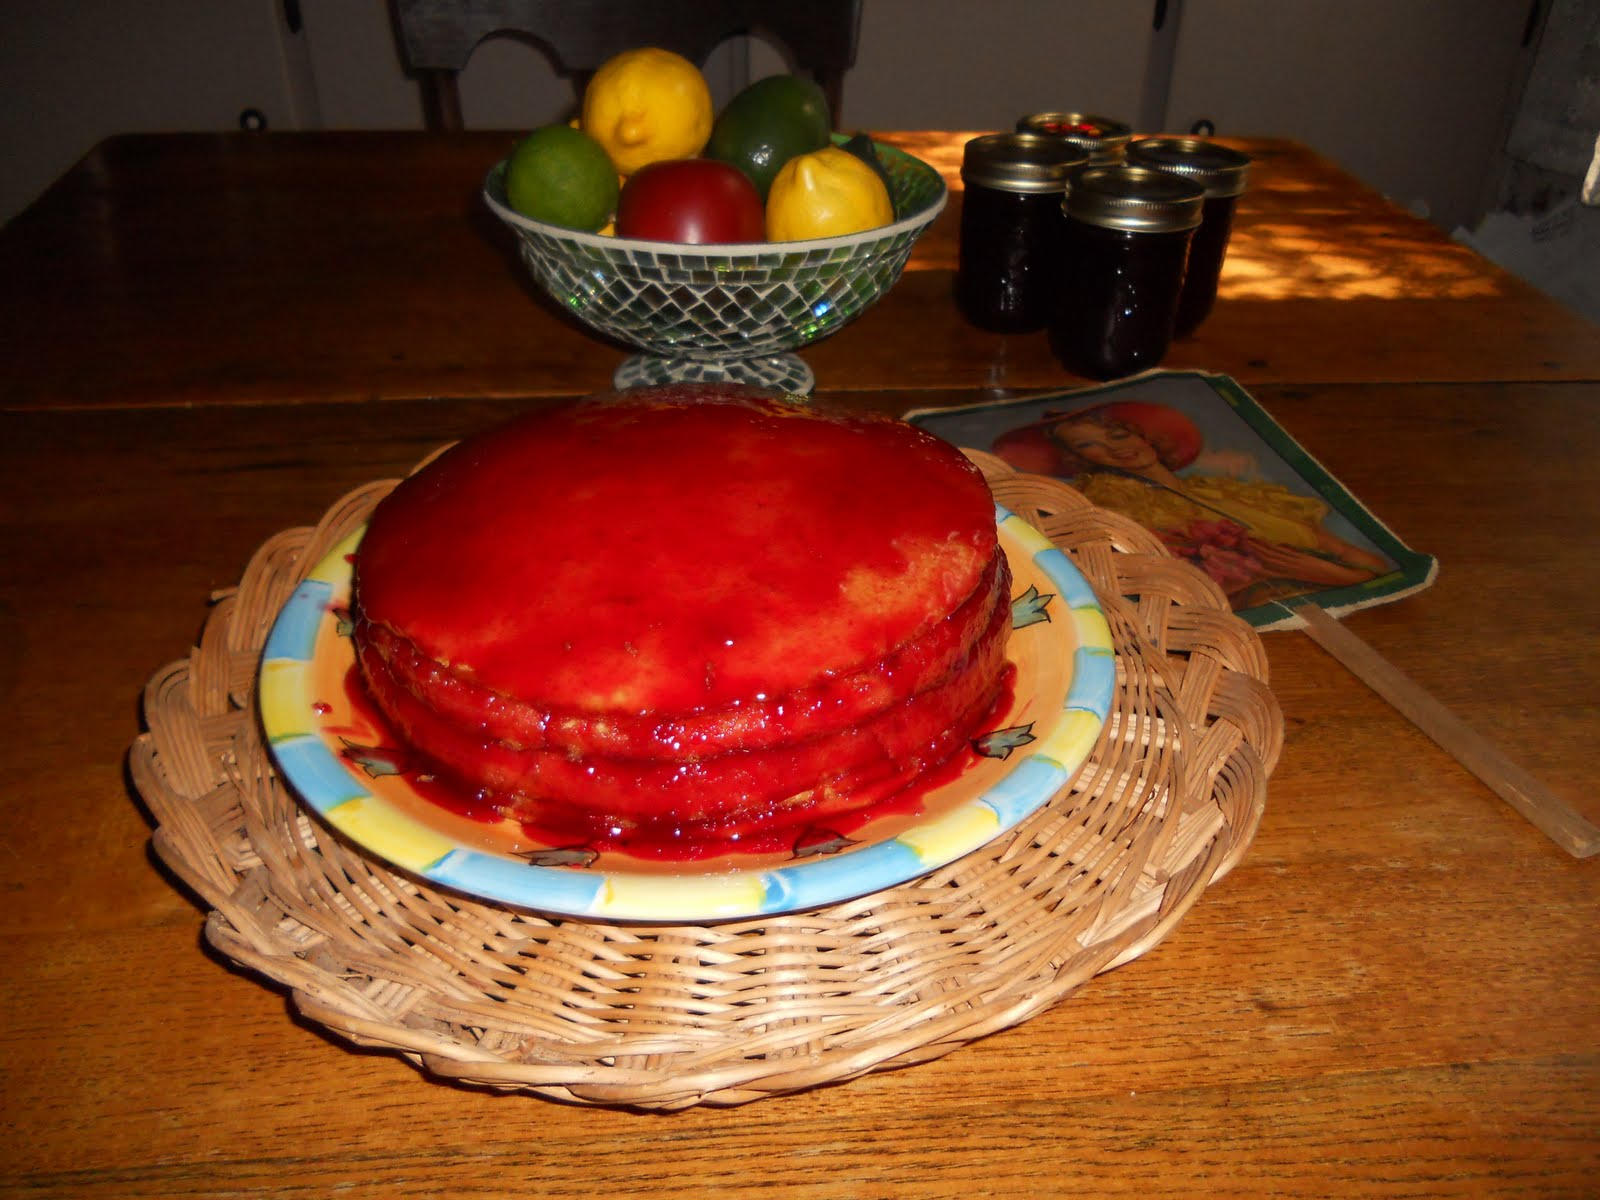 Red Jelly Cake Recipe: Simply Red: My Beautiful Jelly-cake Made With Fresh Plum Jelly